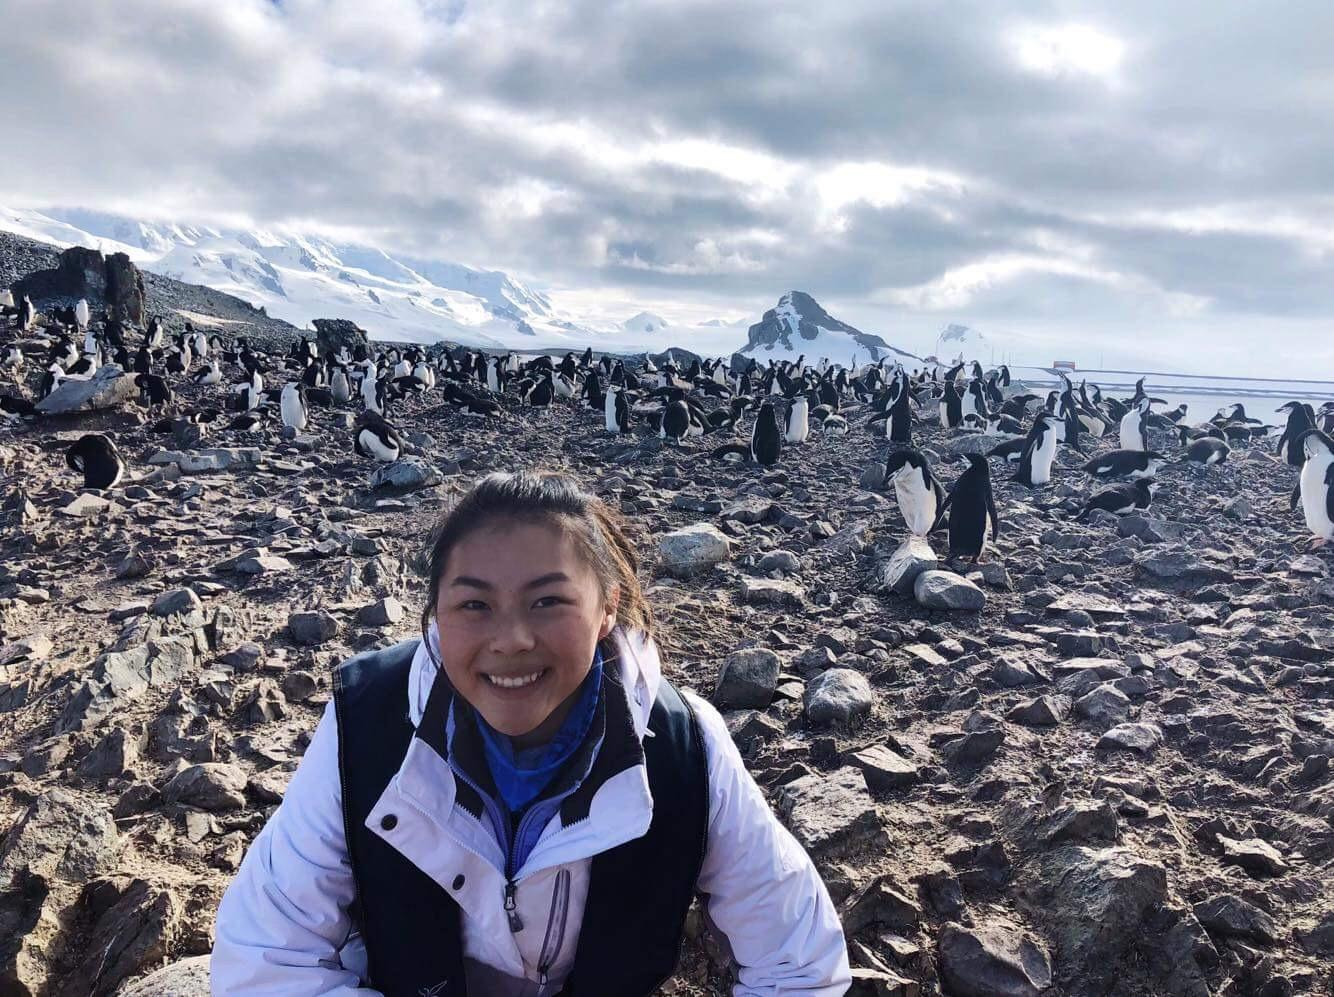 Senior Maria Zhu poses with penguins at Half Moon Island. She visited the continent for six days with a tour group.